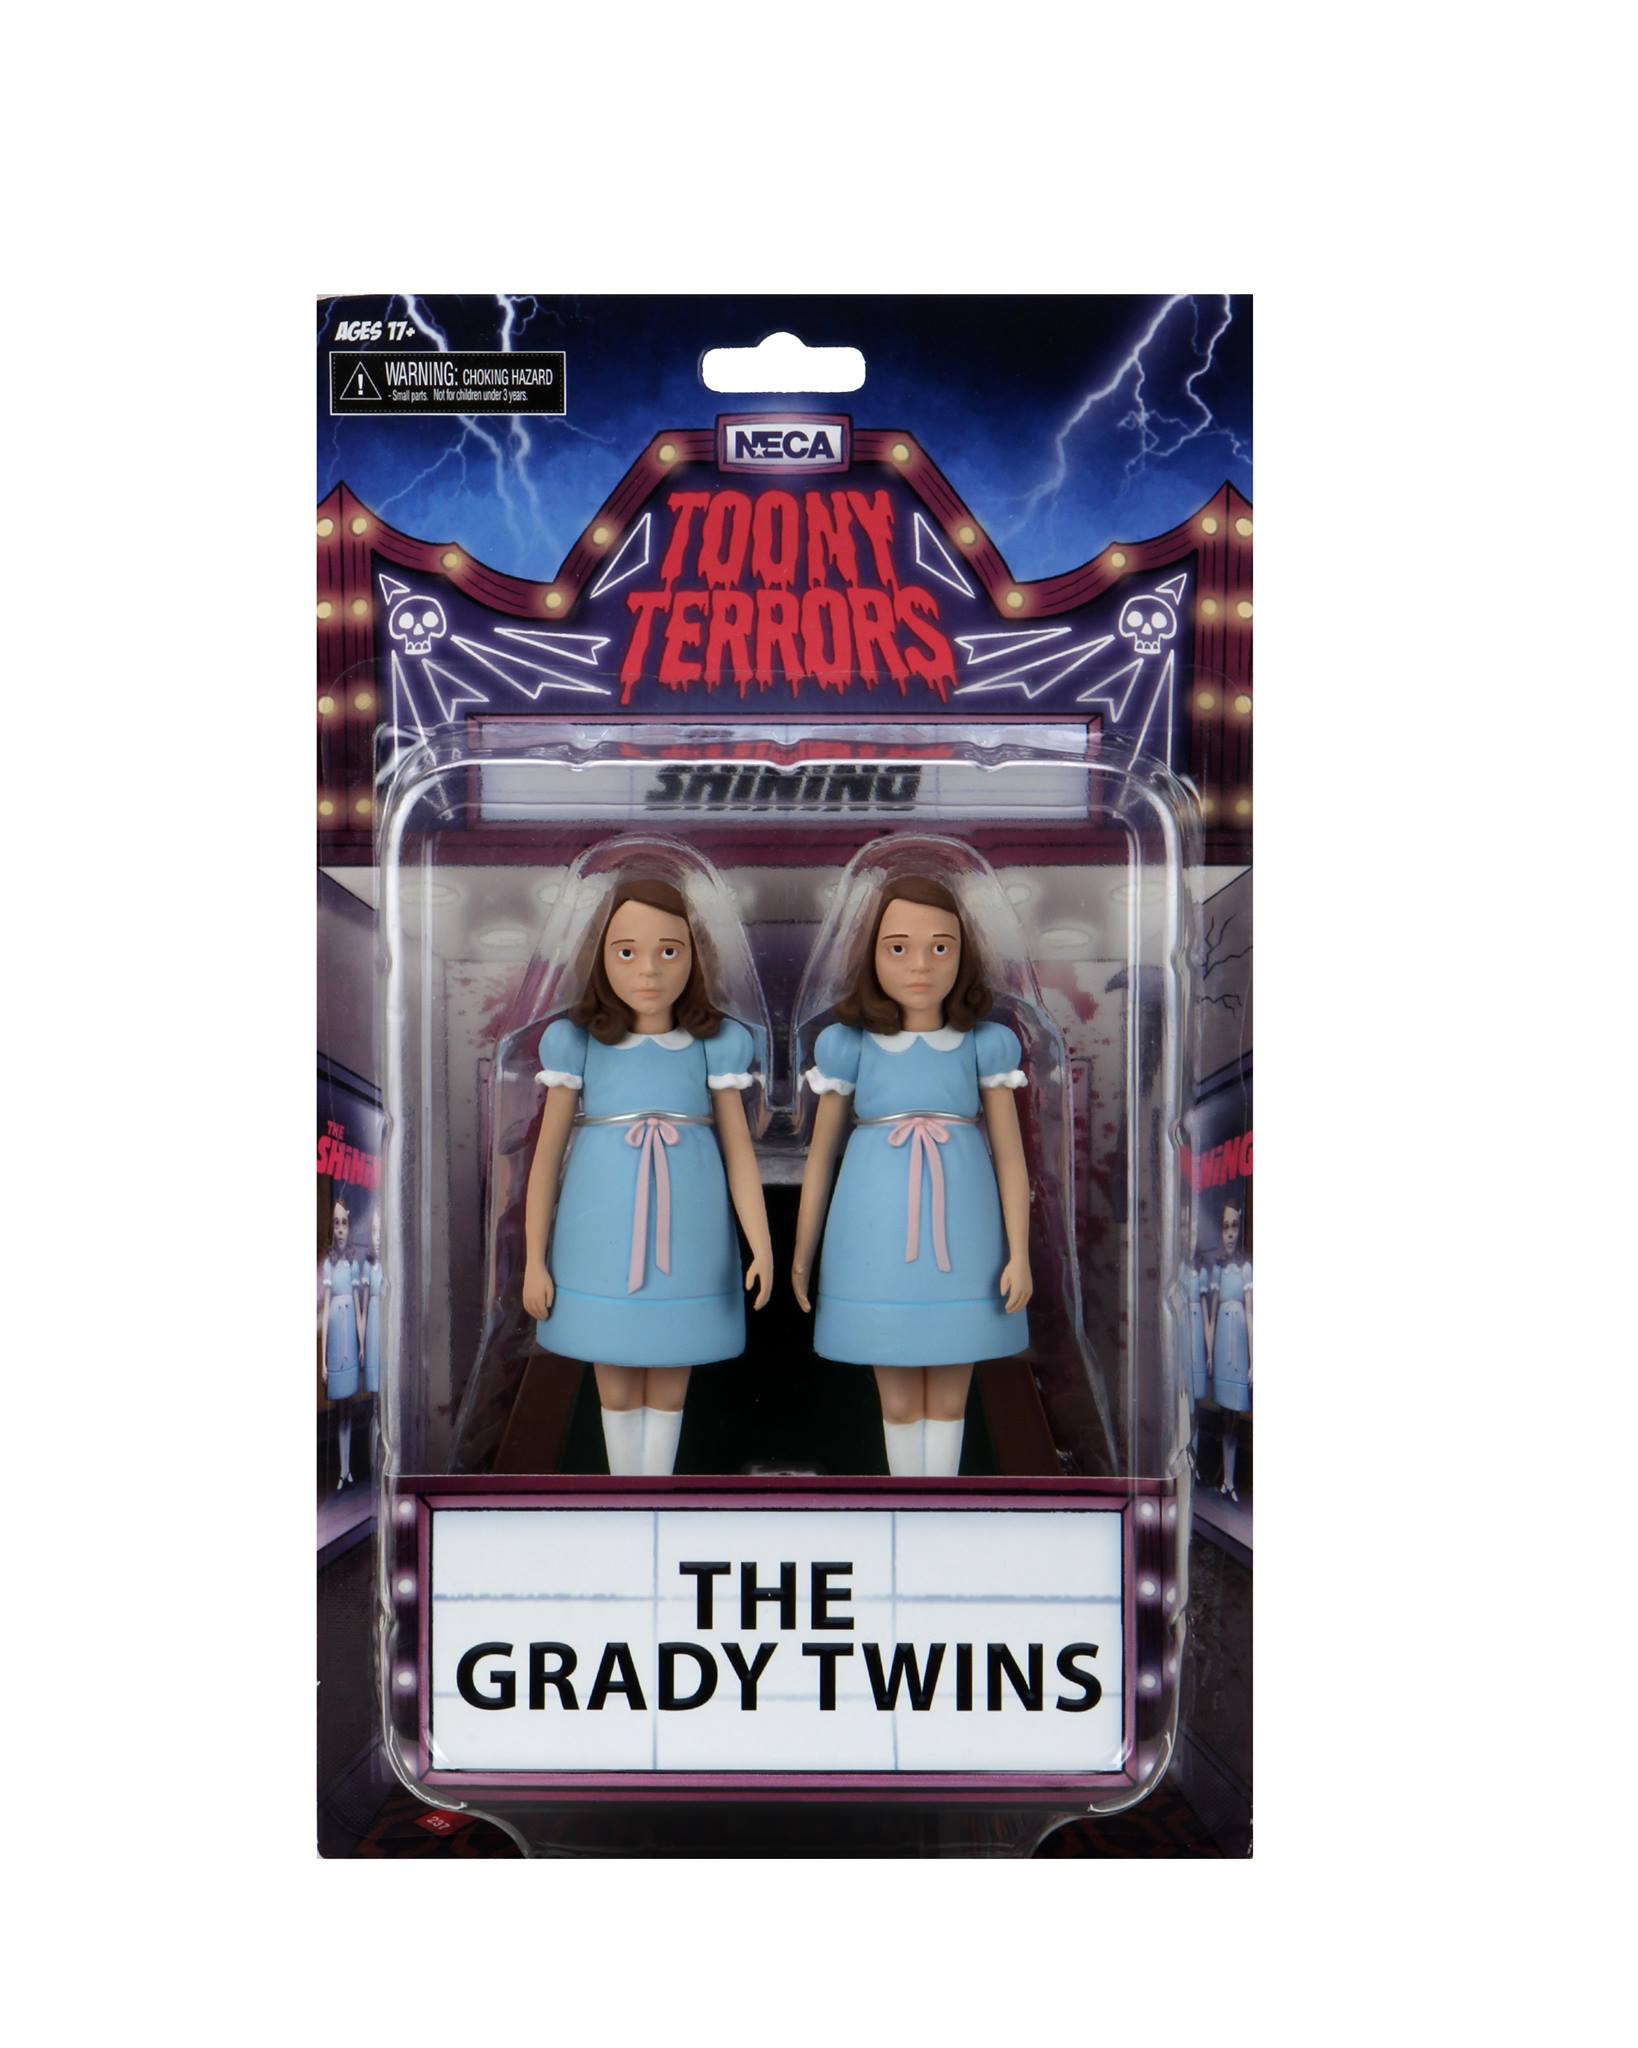 NECA Toony Terrors Grady Twins Packaging 1